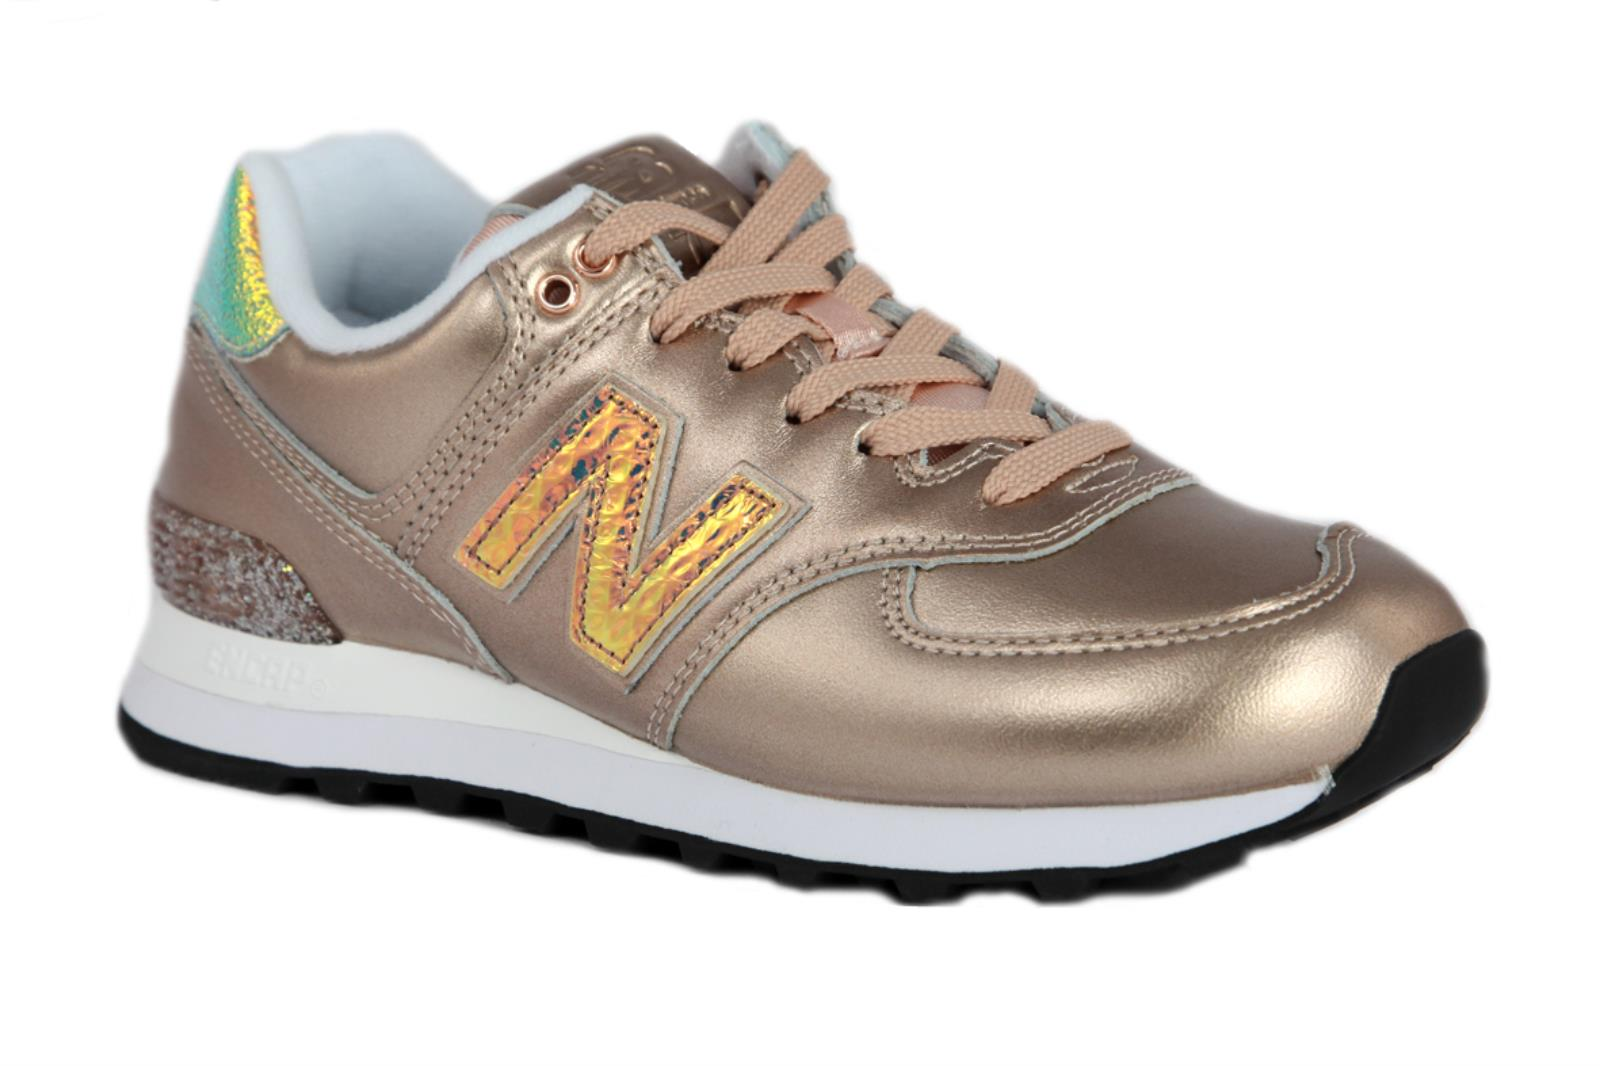 SNEAKERS NEW BALANCE LIFESTYLE WL574NRG DA DONNA IN PELLE SINTETICA DI COLORE BR